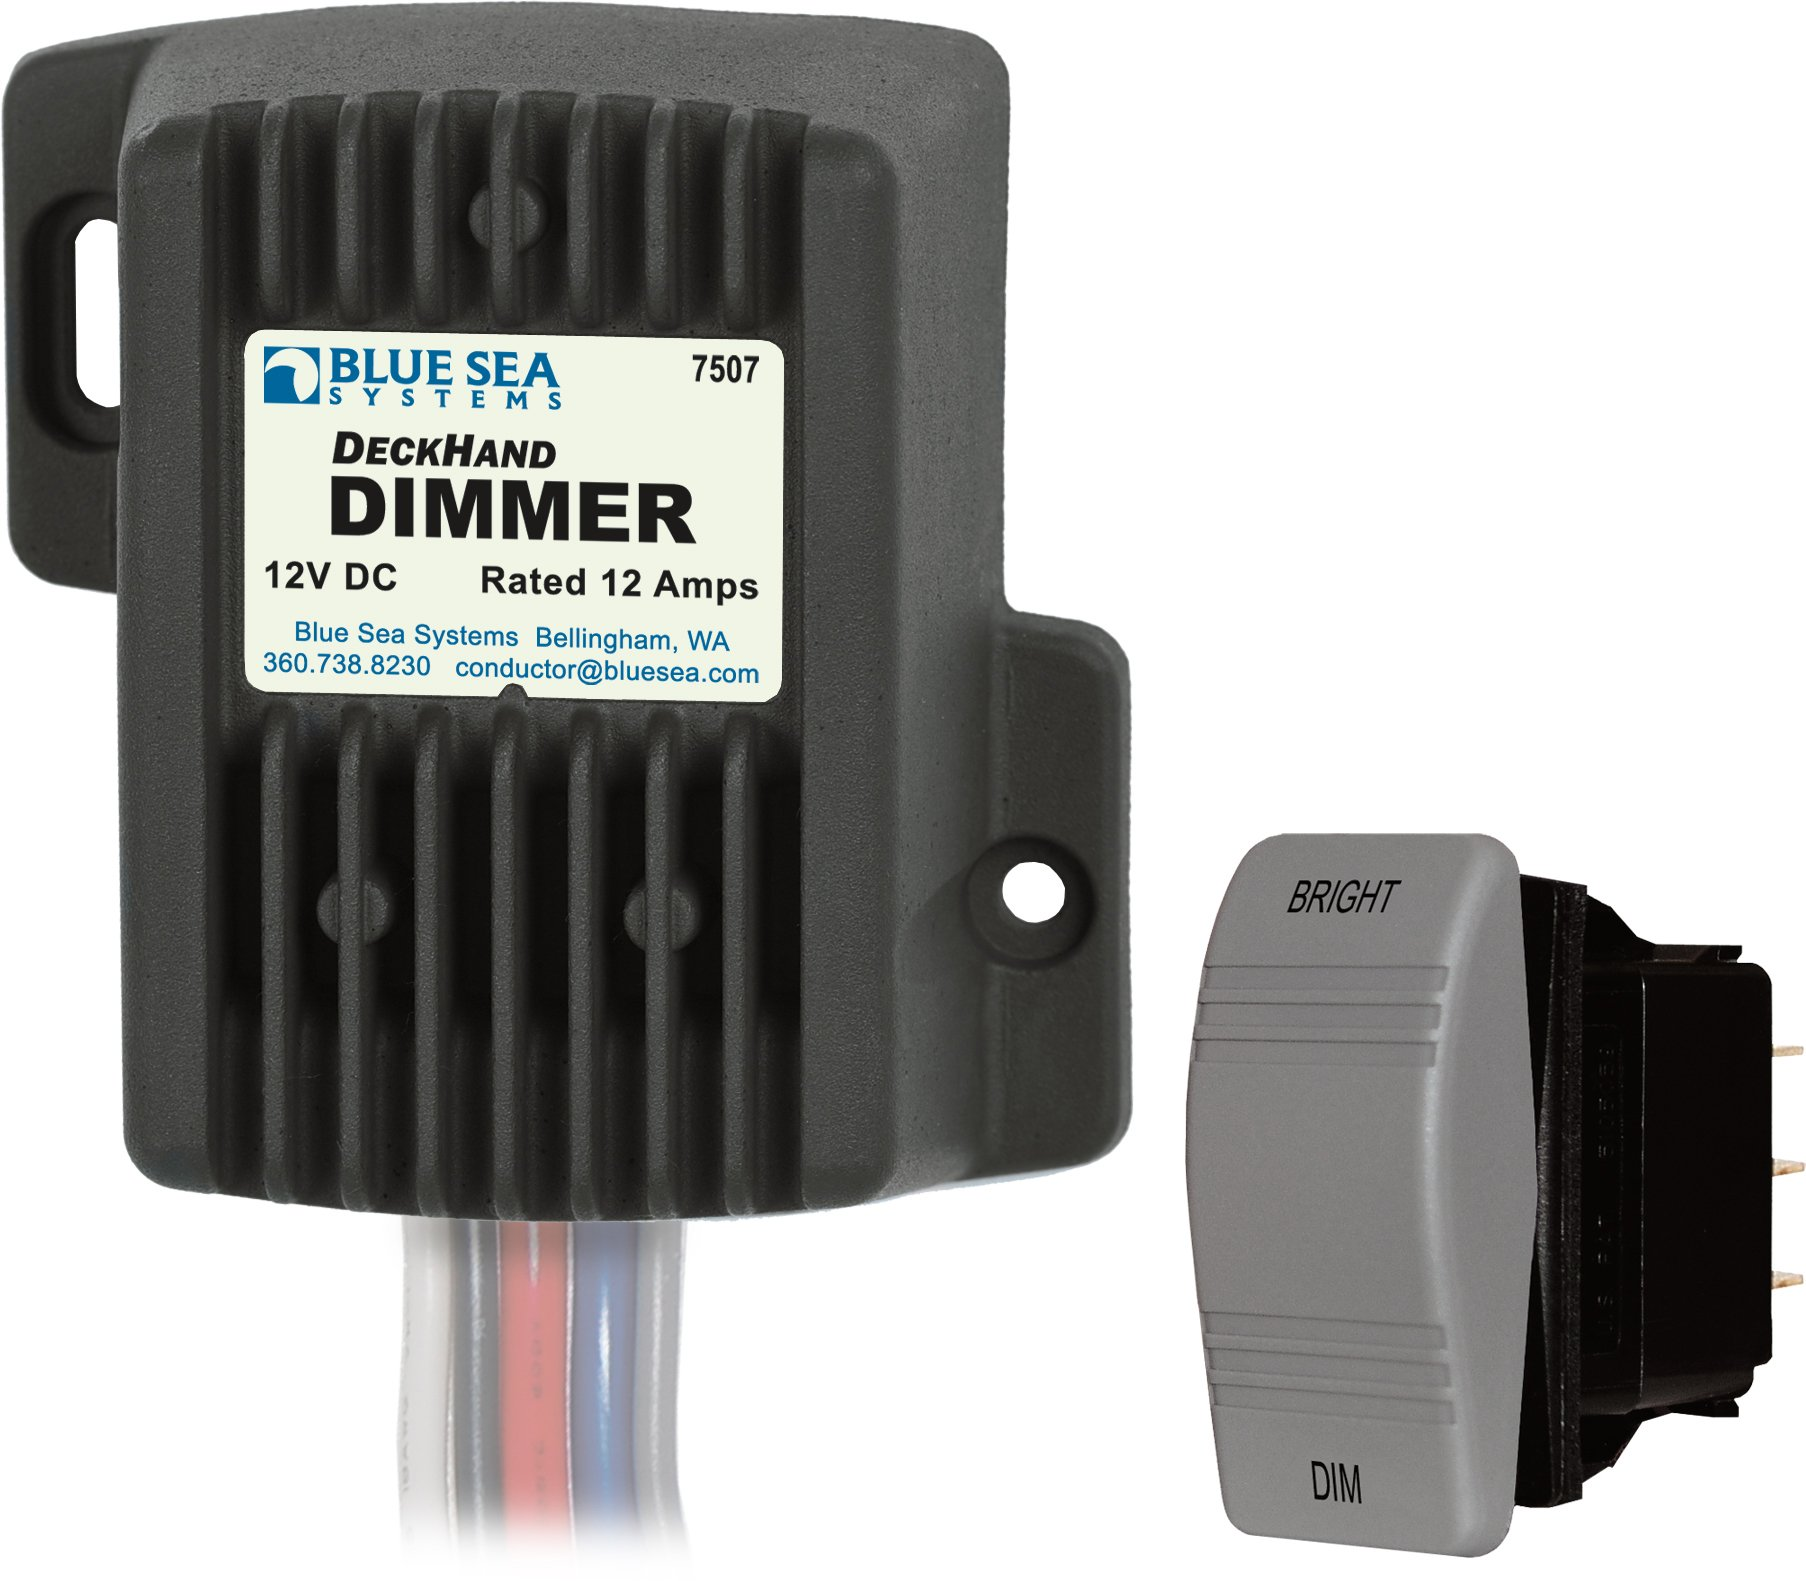 Blue Sea Systems 12V DC 12A Deckhand Dimmer